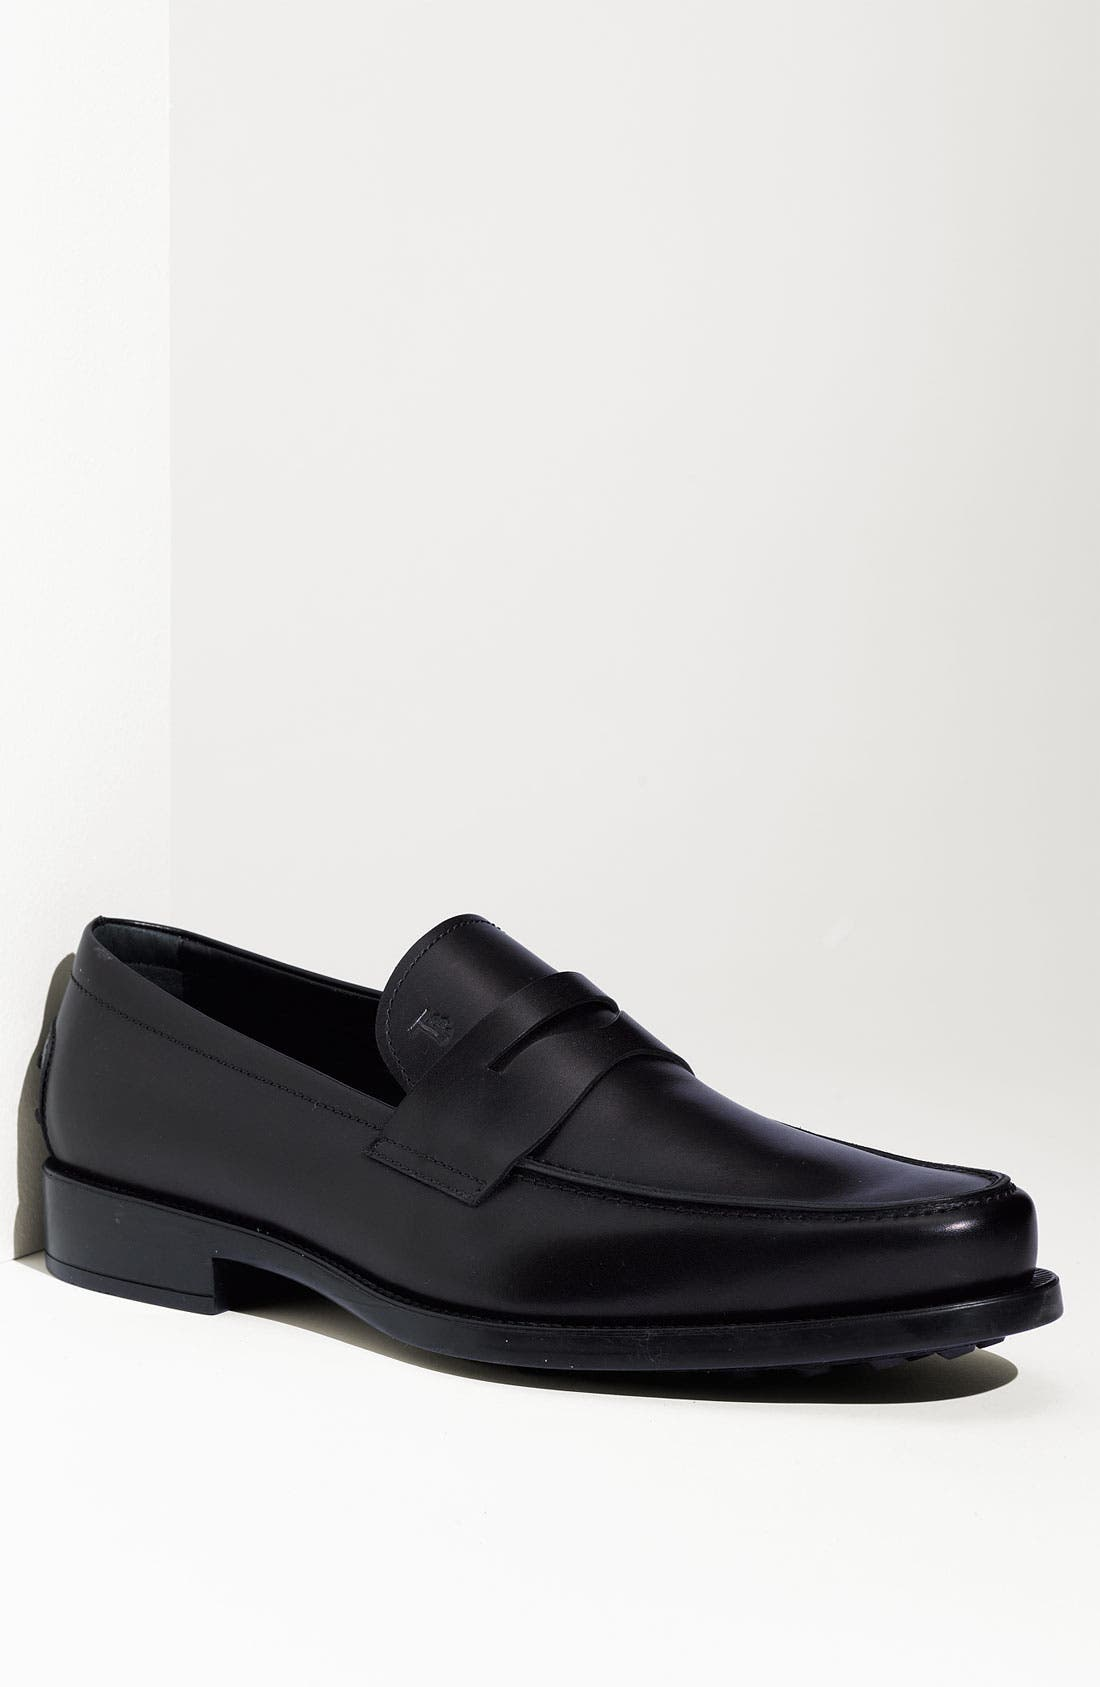 TODS Boston Penny Loafer